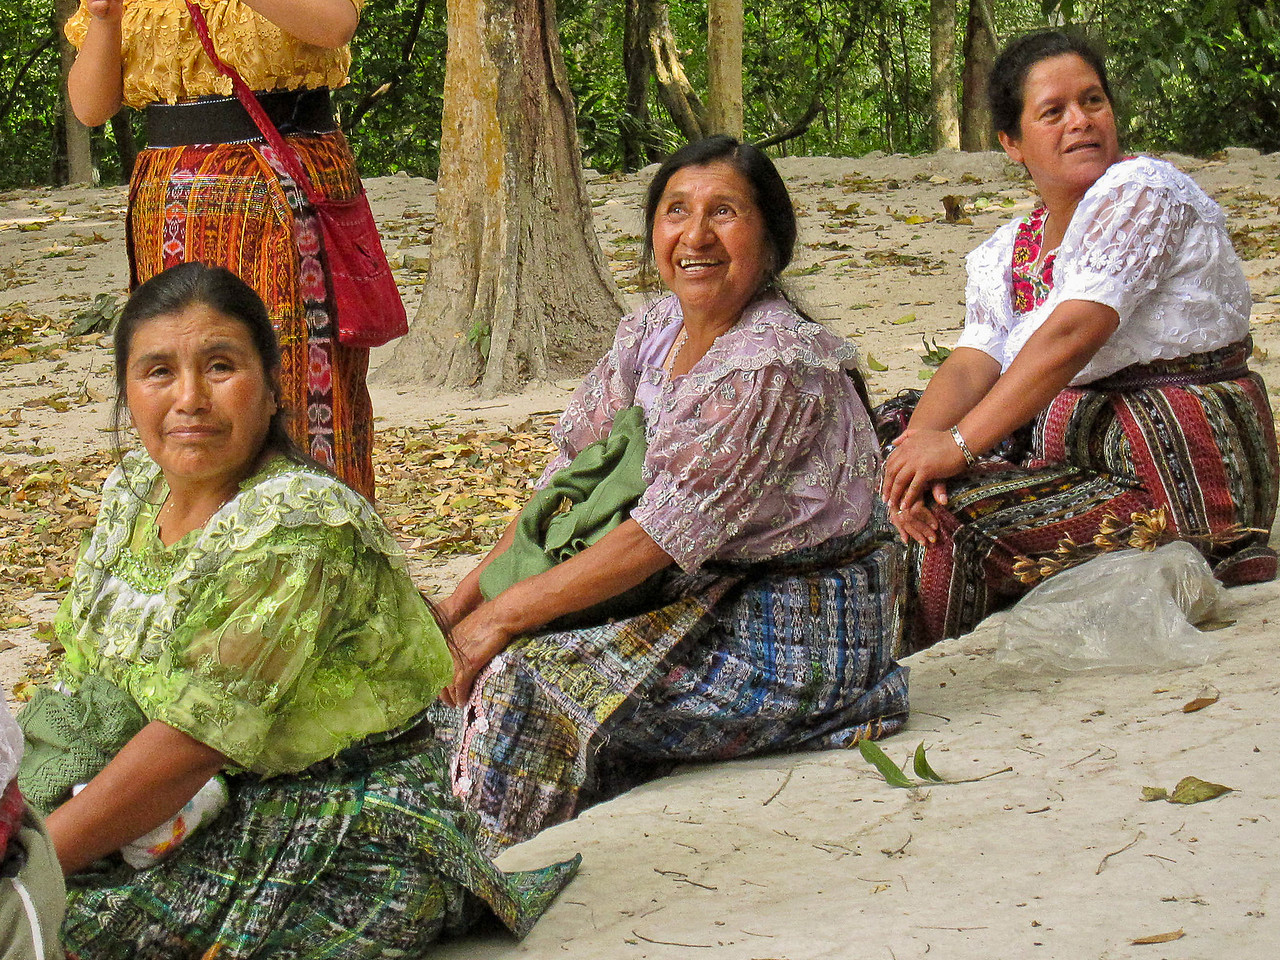 Guatemalan women in traditioanal dress